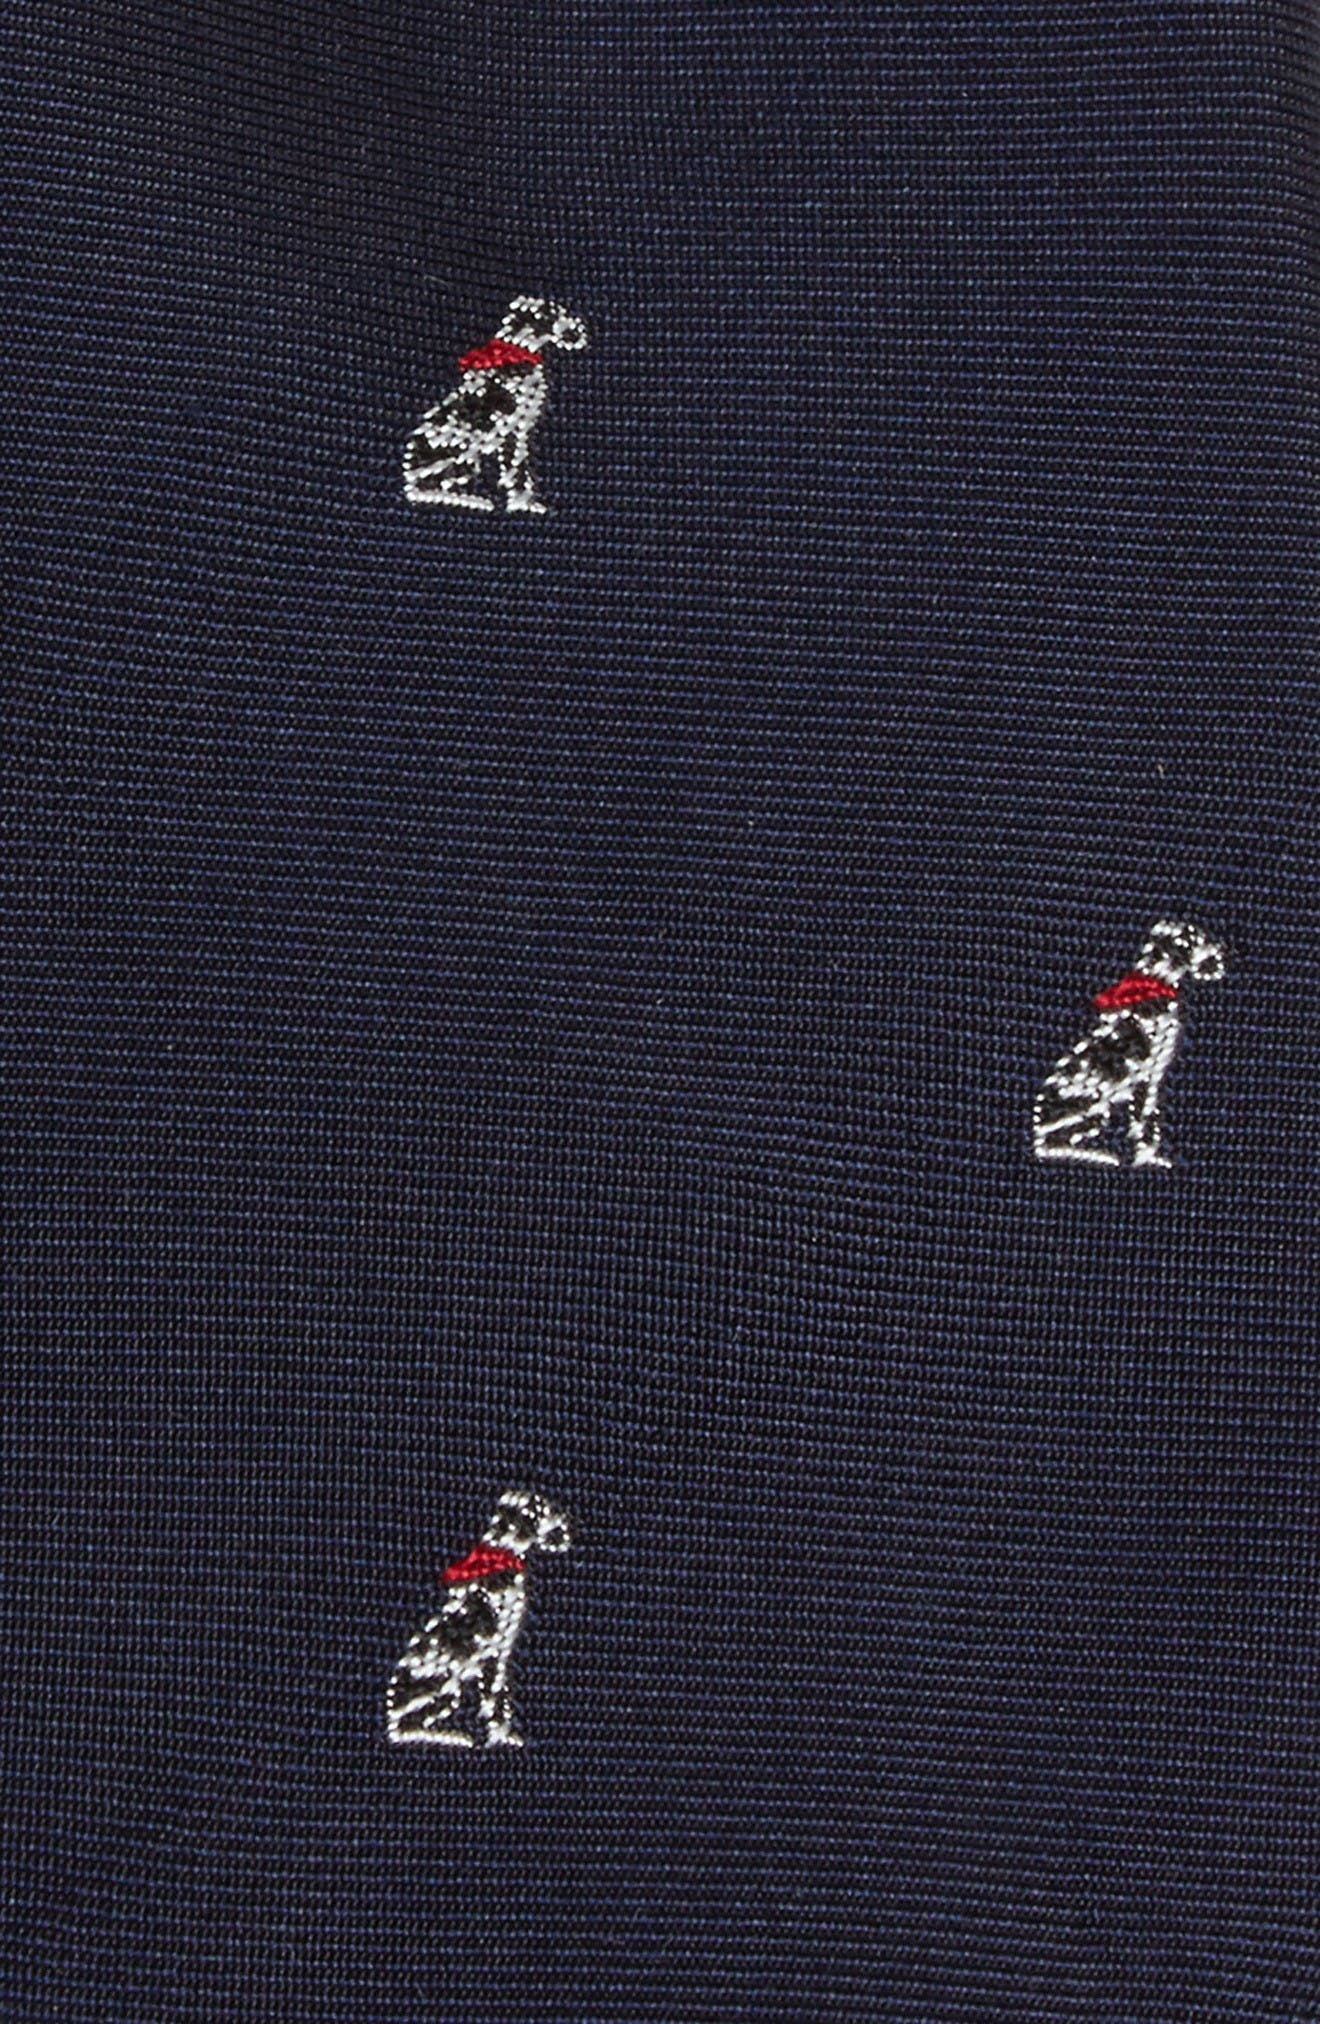 Embroidered Dog Silk Tie,                             Alternate thumbnail 2, color,                             Navy